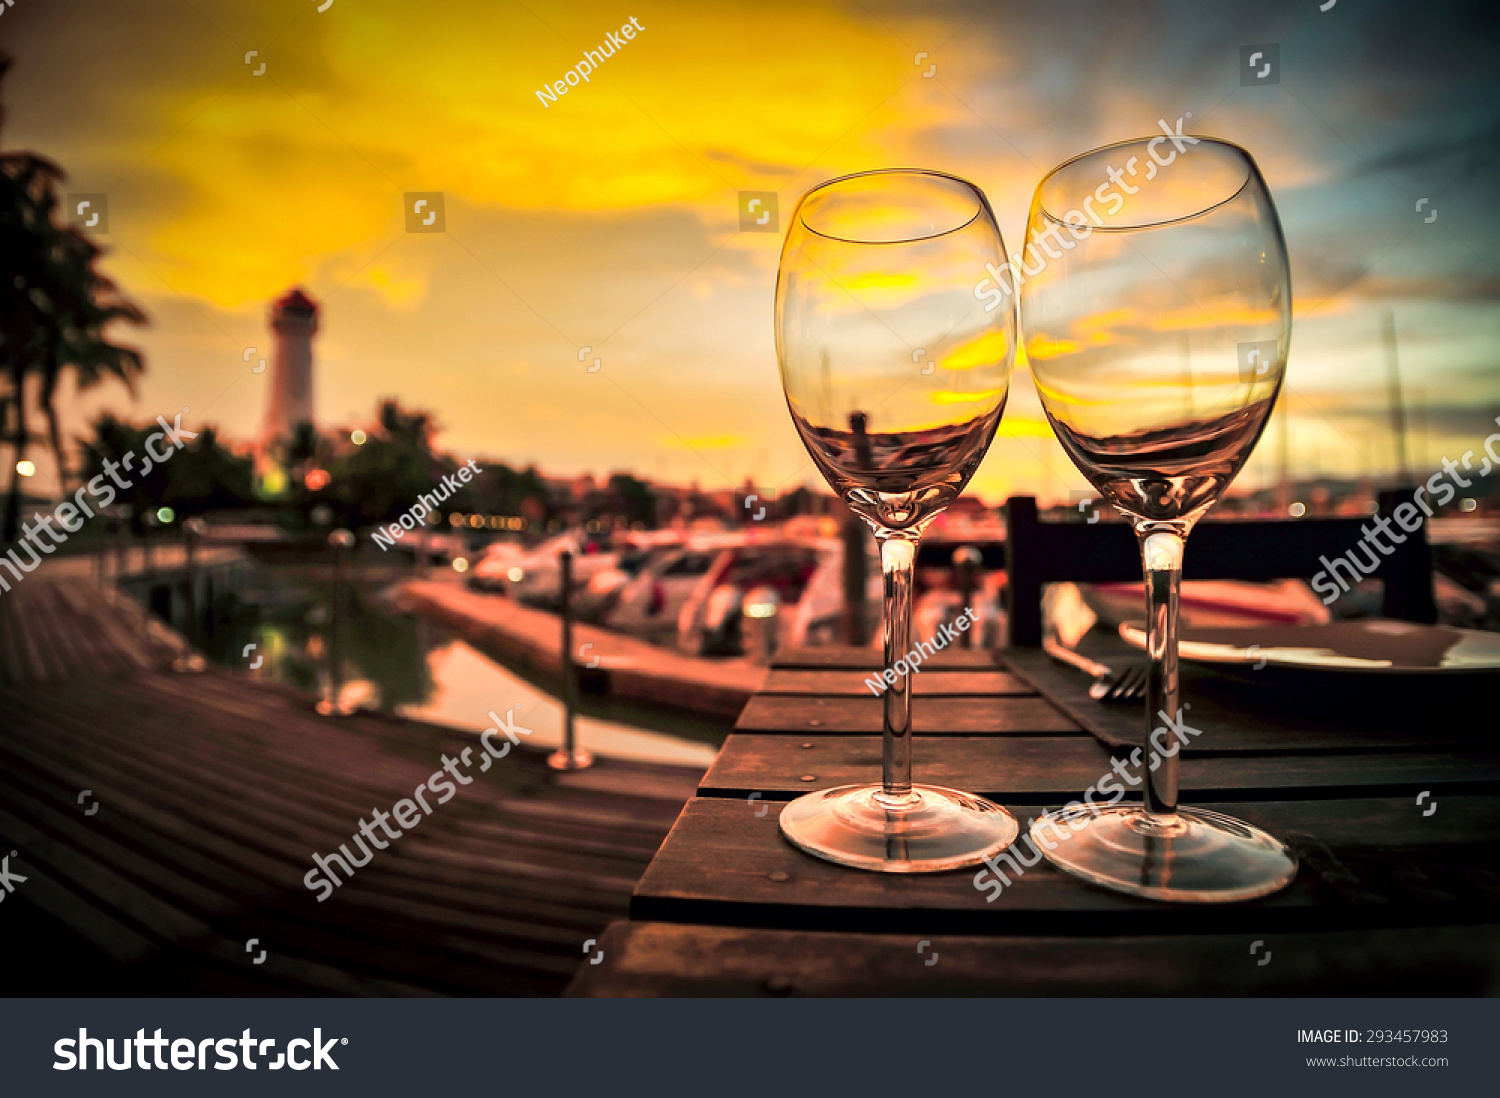 Dinner Table Background silhouette wine glass on dinner table stock photo 293457983